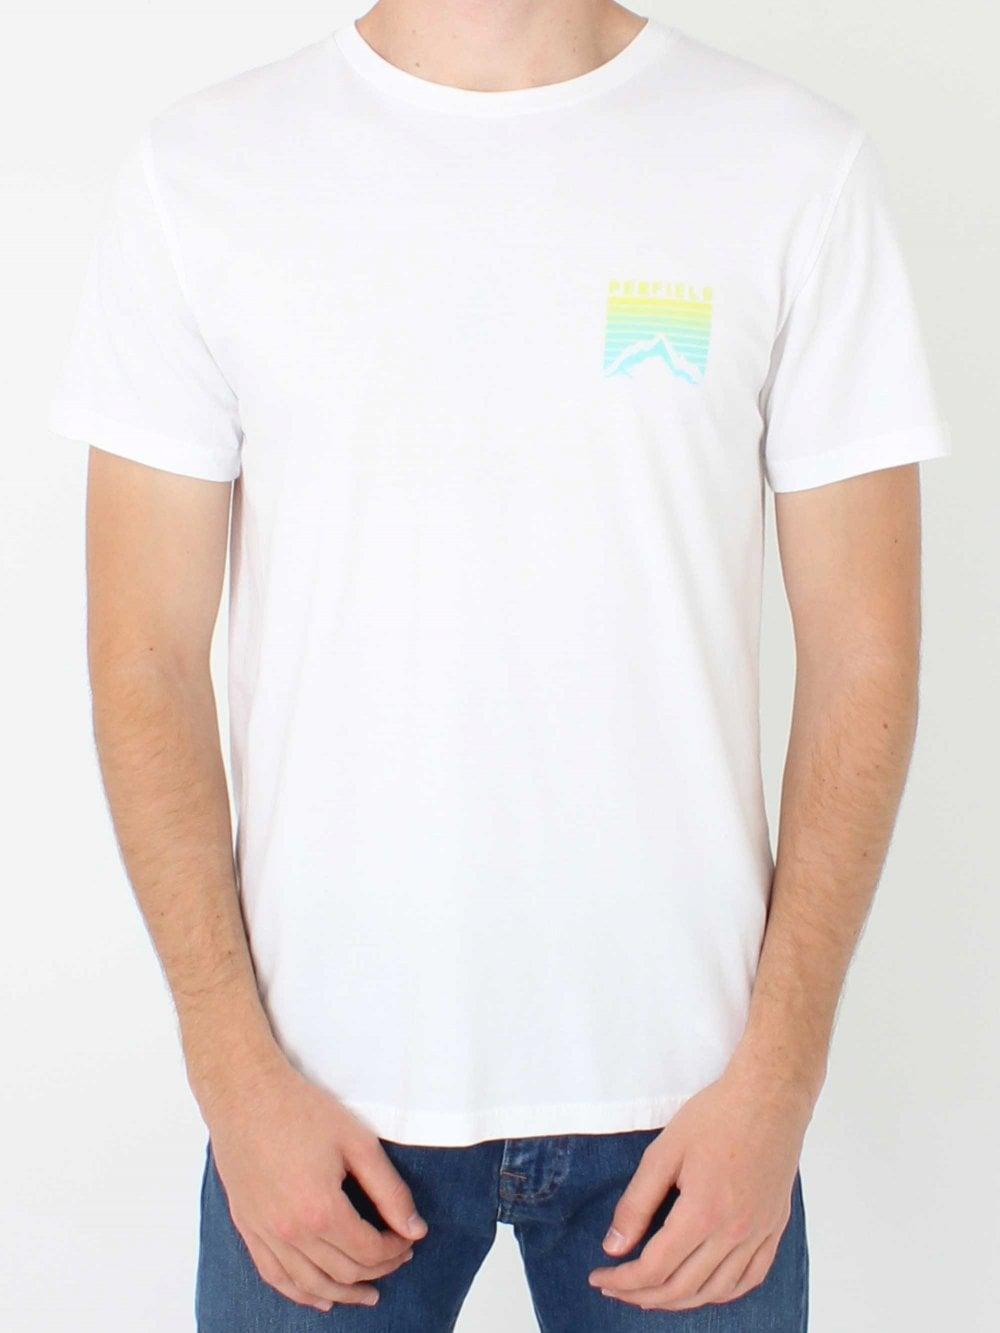 moderate price 50-70%off find lowest price Caputo T.Shirt - White